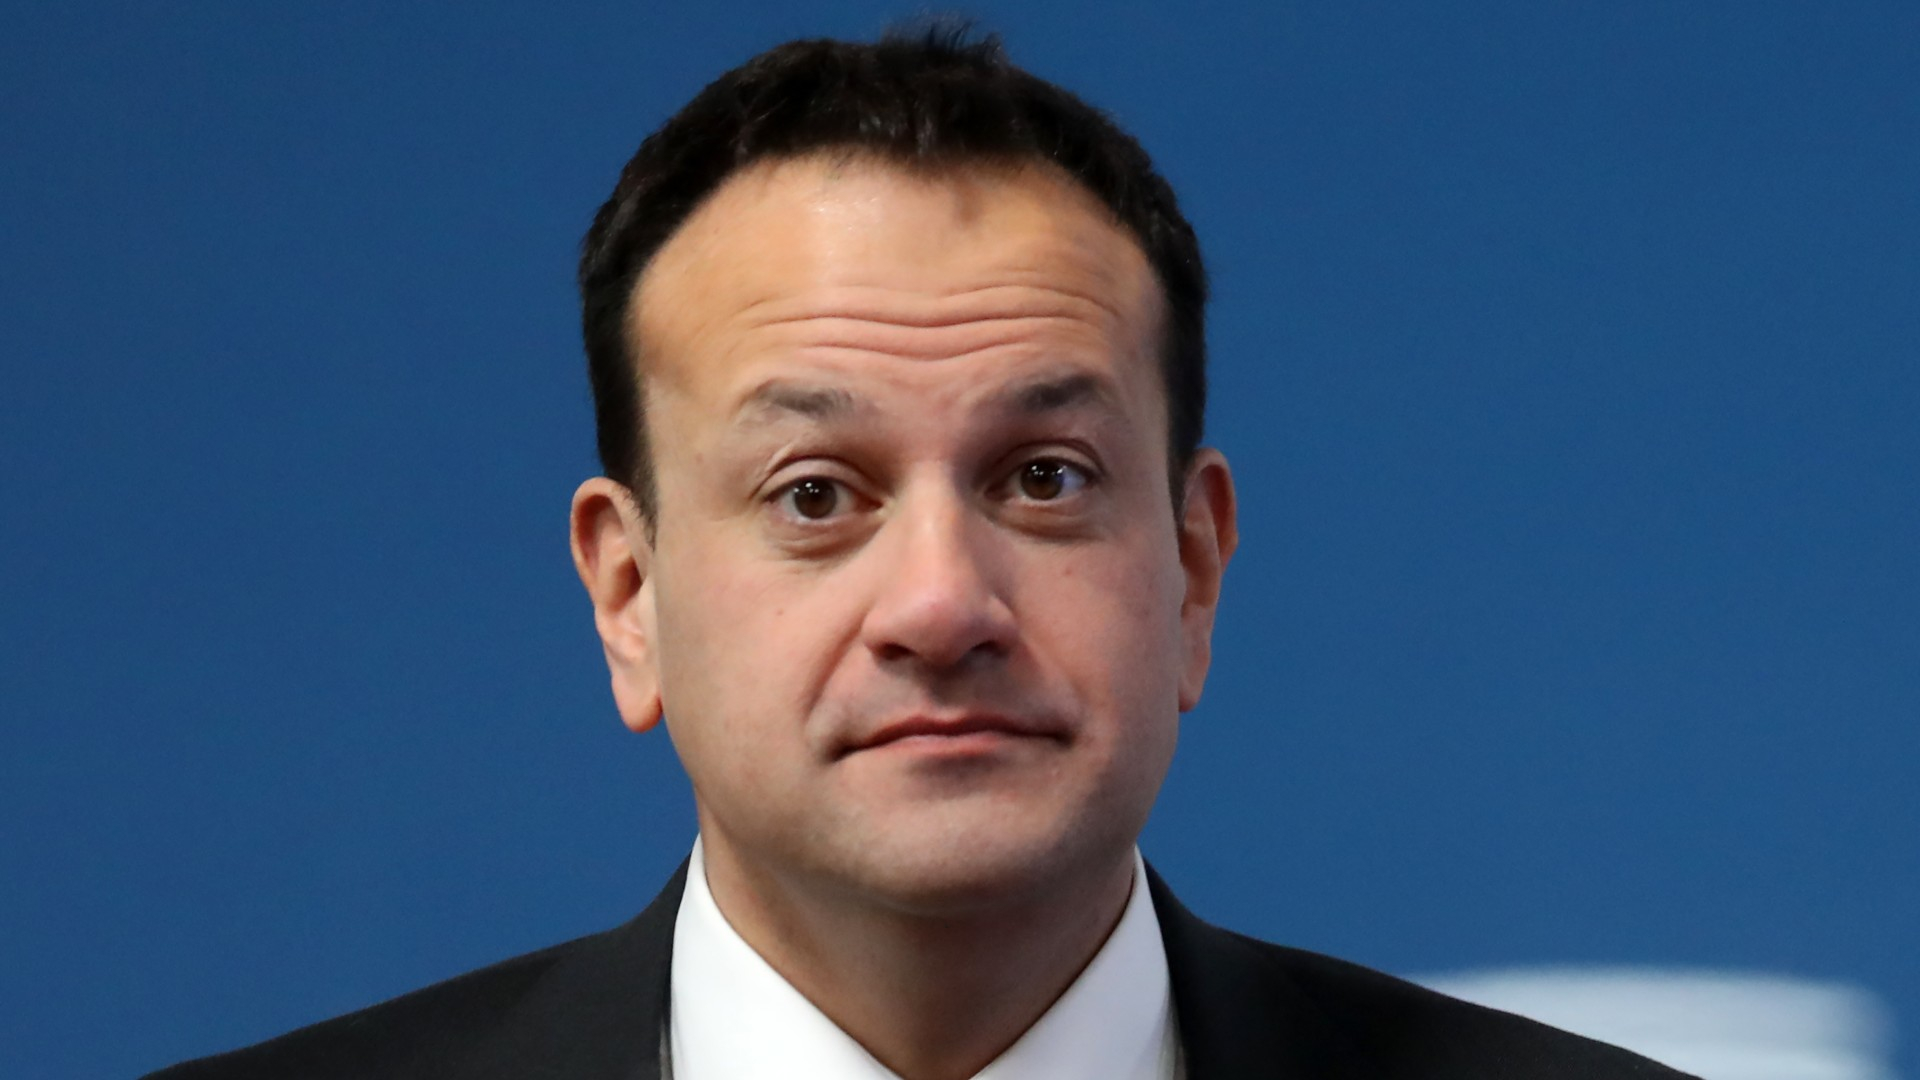 Irish PM Varadkar resigns - but stays on with country in angry deadlock